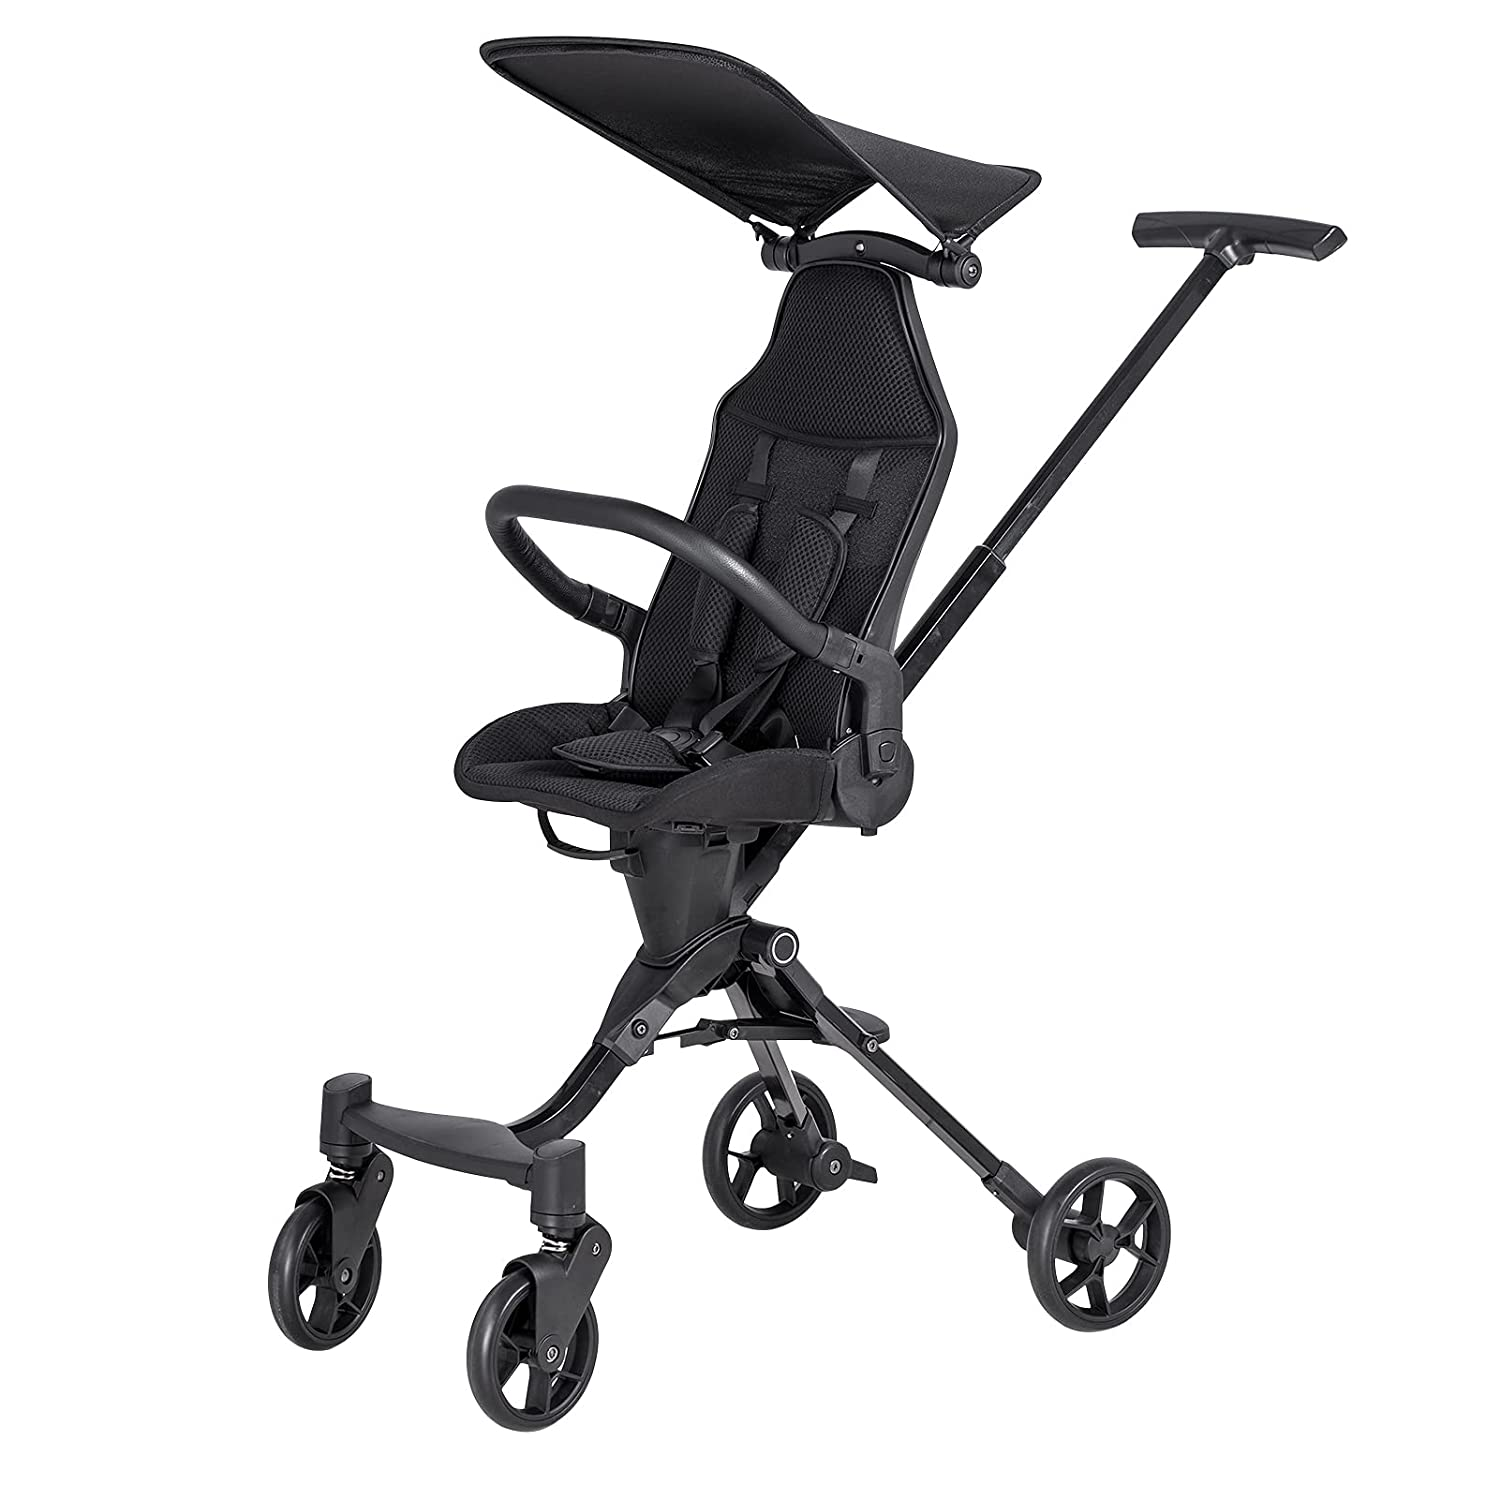 Googa Lightweight Stroller Foldable Ultra Compact Travel Baby Stroller with Breathable Mesh Design (Black)